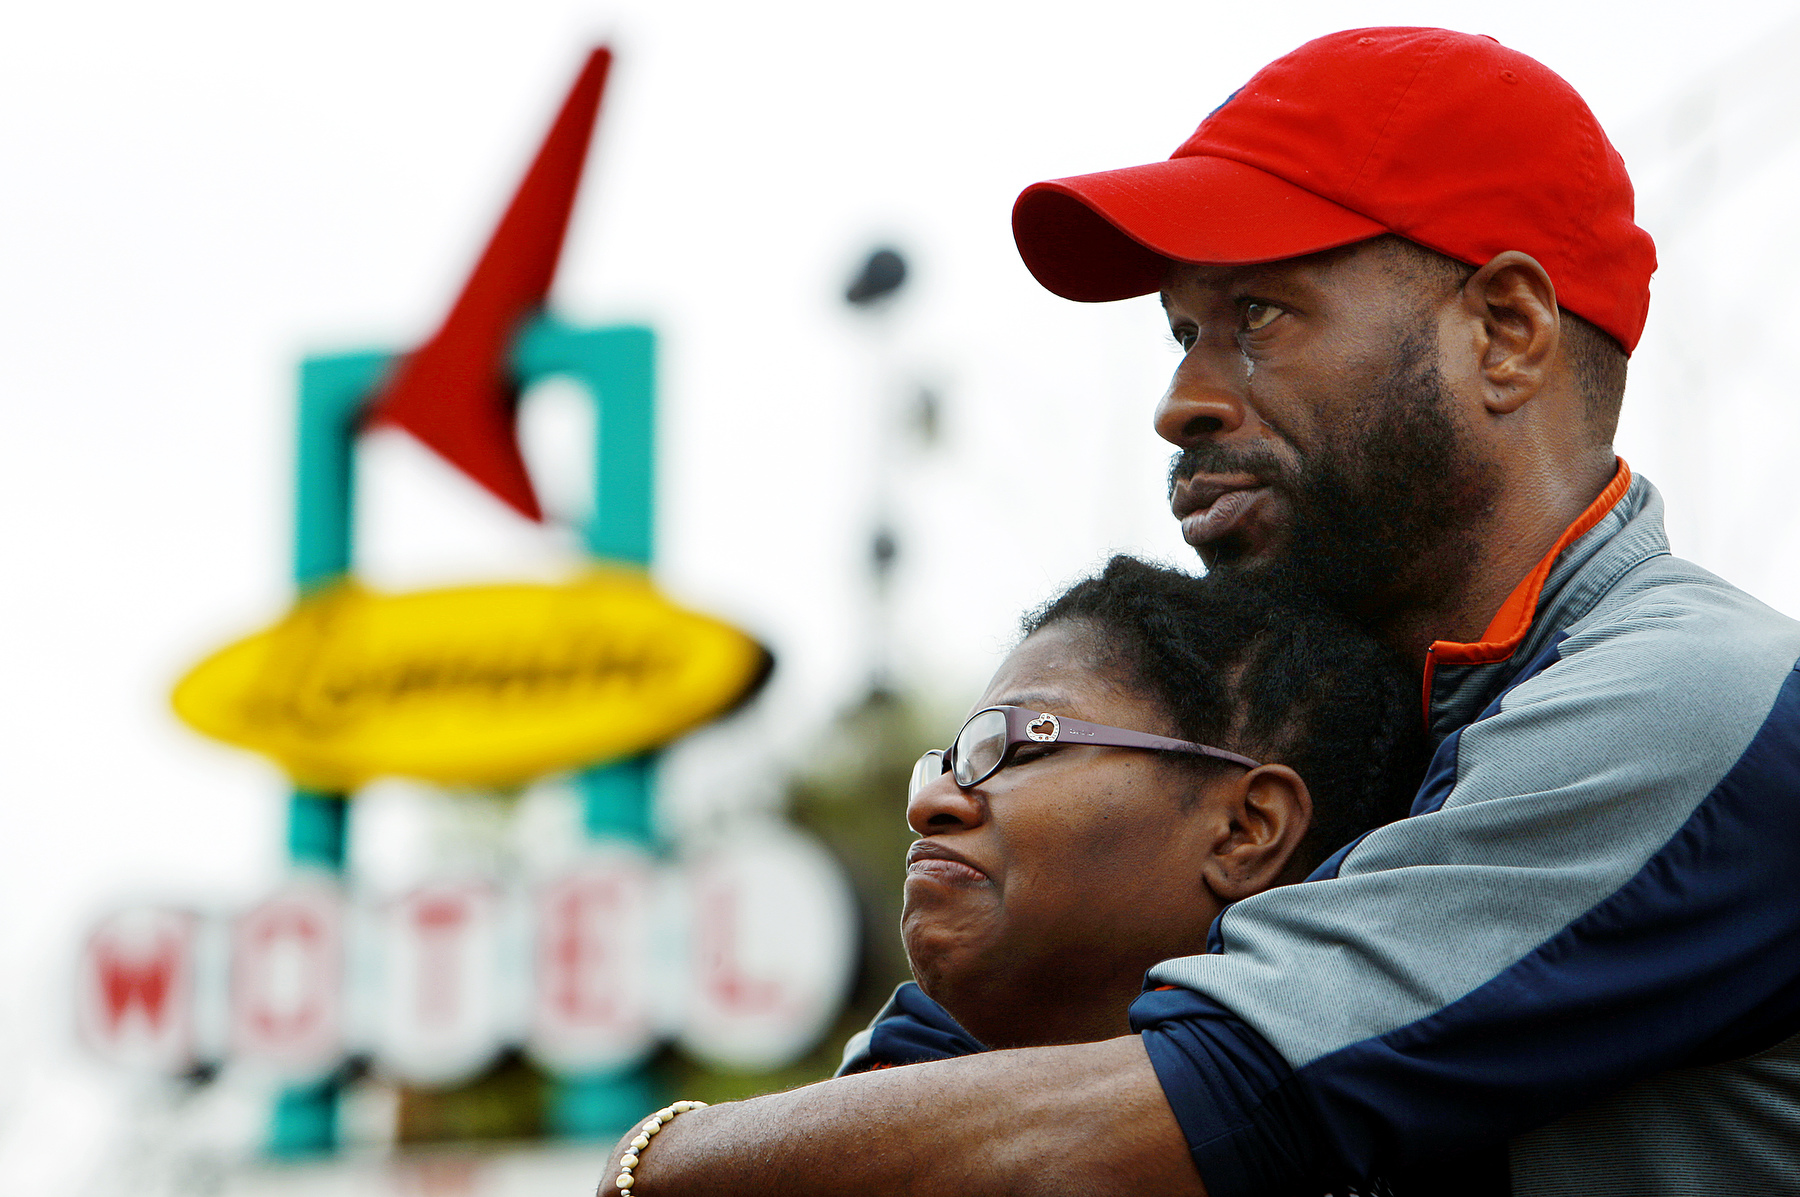 March 31, 2016 - Farice and Antandra Campbell, from Murphysboro, Ill. get emotional as they stand outside the National Civil Rights Museum and look up to the balcony where Martin Luther King Jr. was struck down by an assassin's bullet on April 4, 1968. On the 48th anniversary of his death this Monday the museum will hold a commemoration starting at 4:30 that will include remarks from Rev. Jesse Jackson and will conclude with a moment of silence at 6:01 when the gun shot rang out. (Mike Brown/The Commercial Appeal)